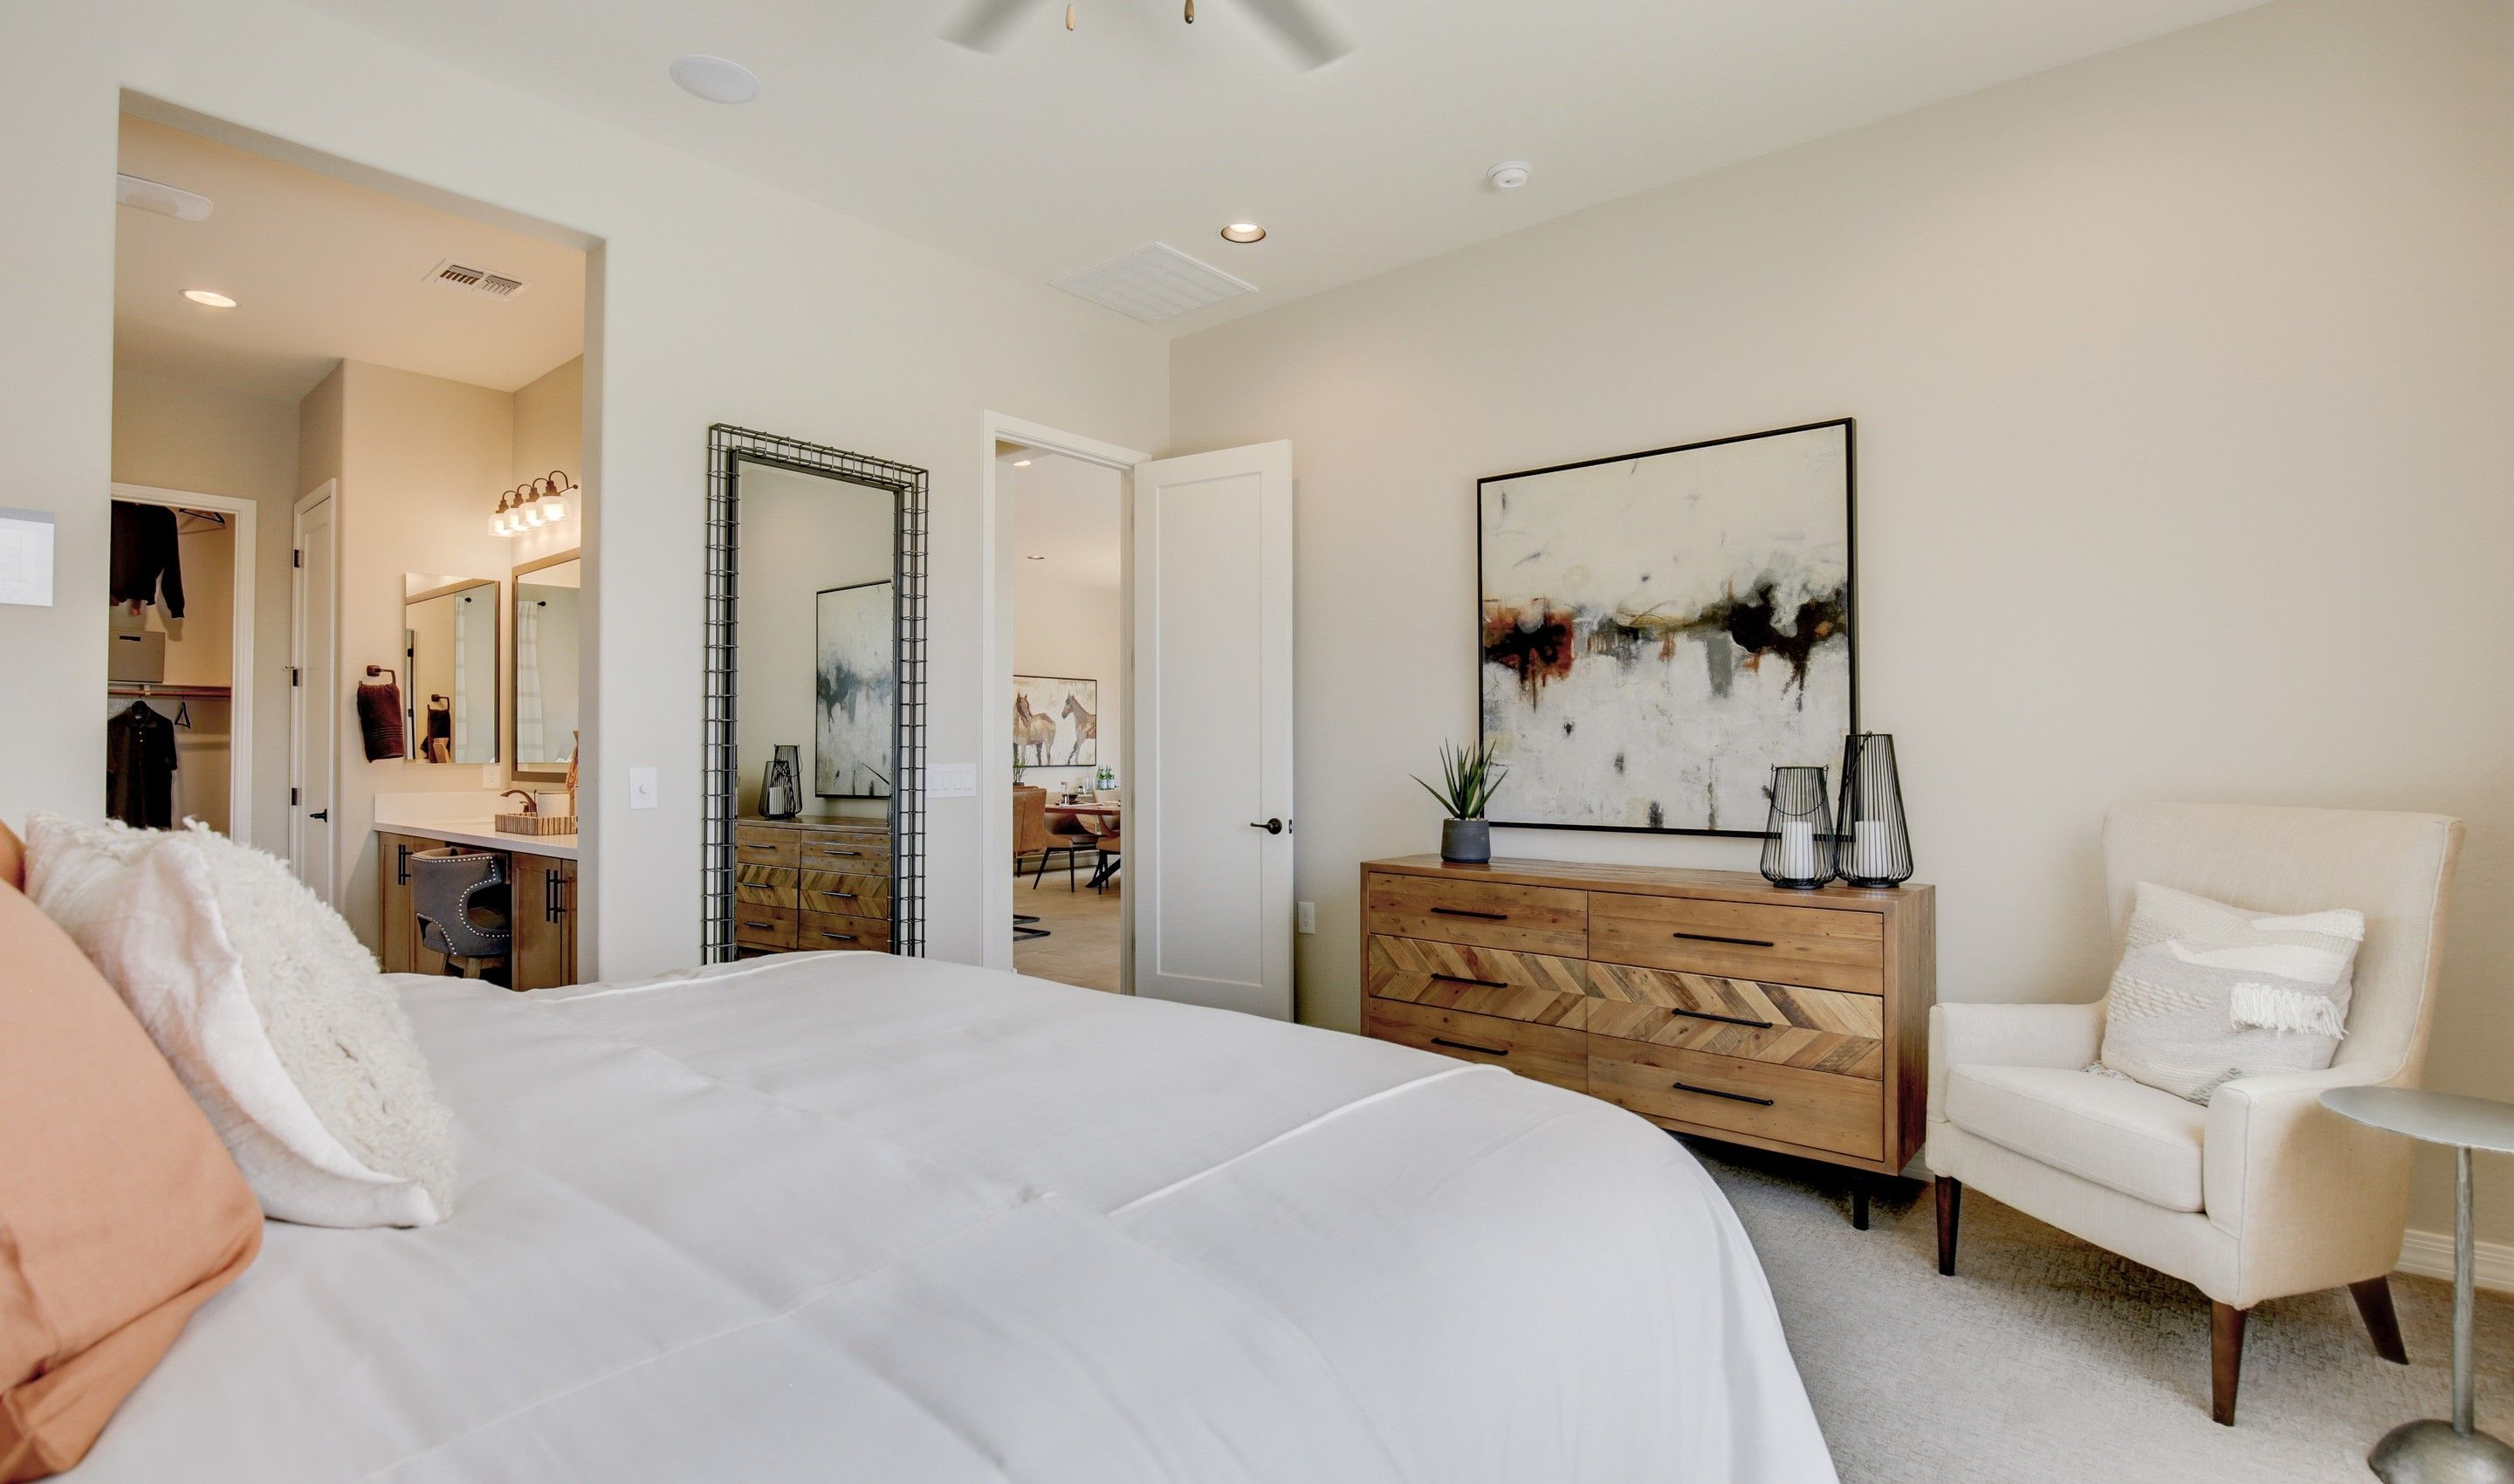 Bedroom featured in the Cavallo By K. Hovnanian's® Four Seasons in Phoenix-Mesa, AZ